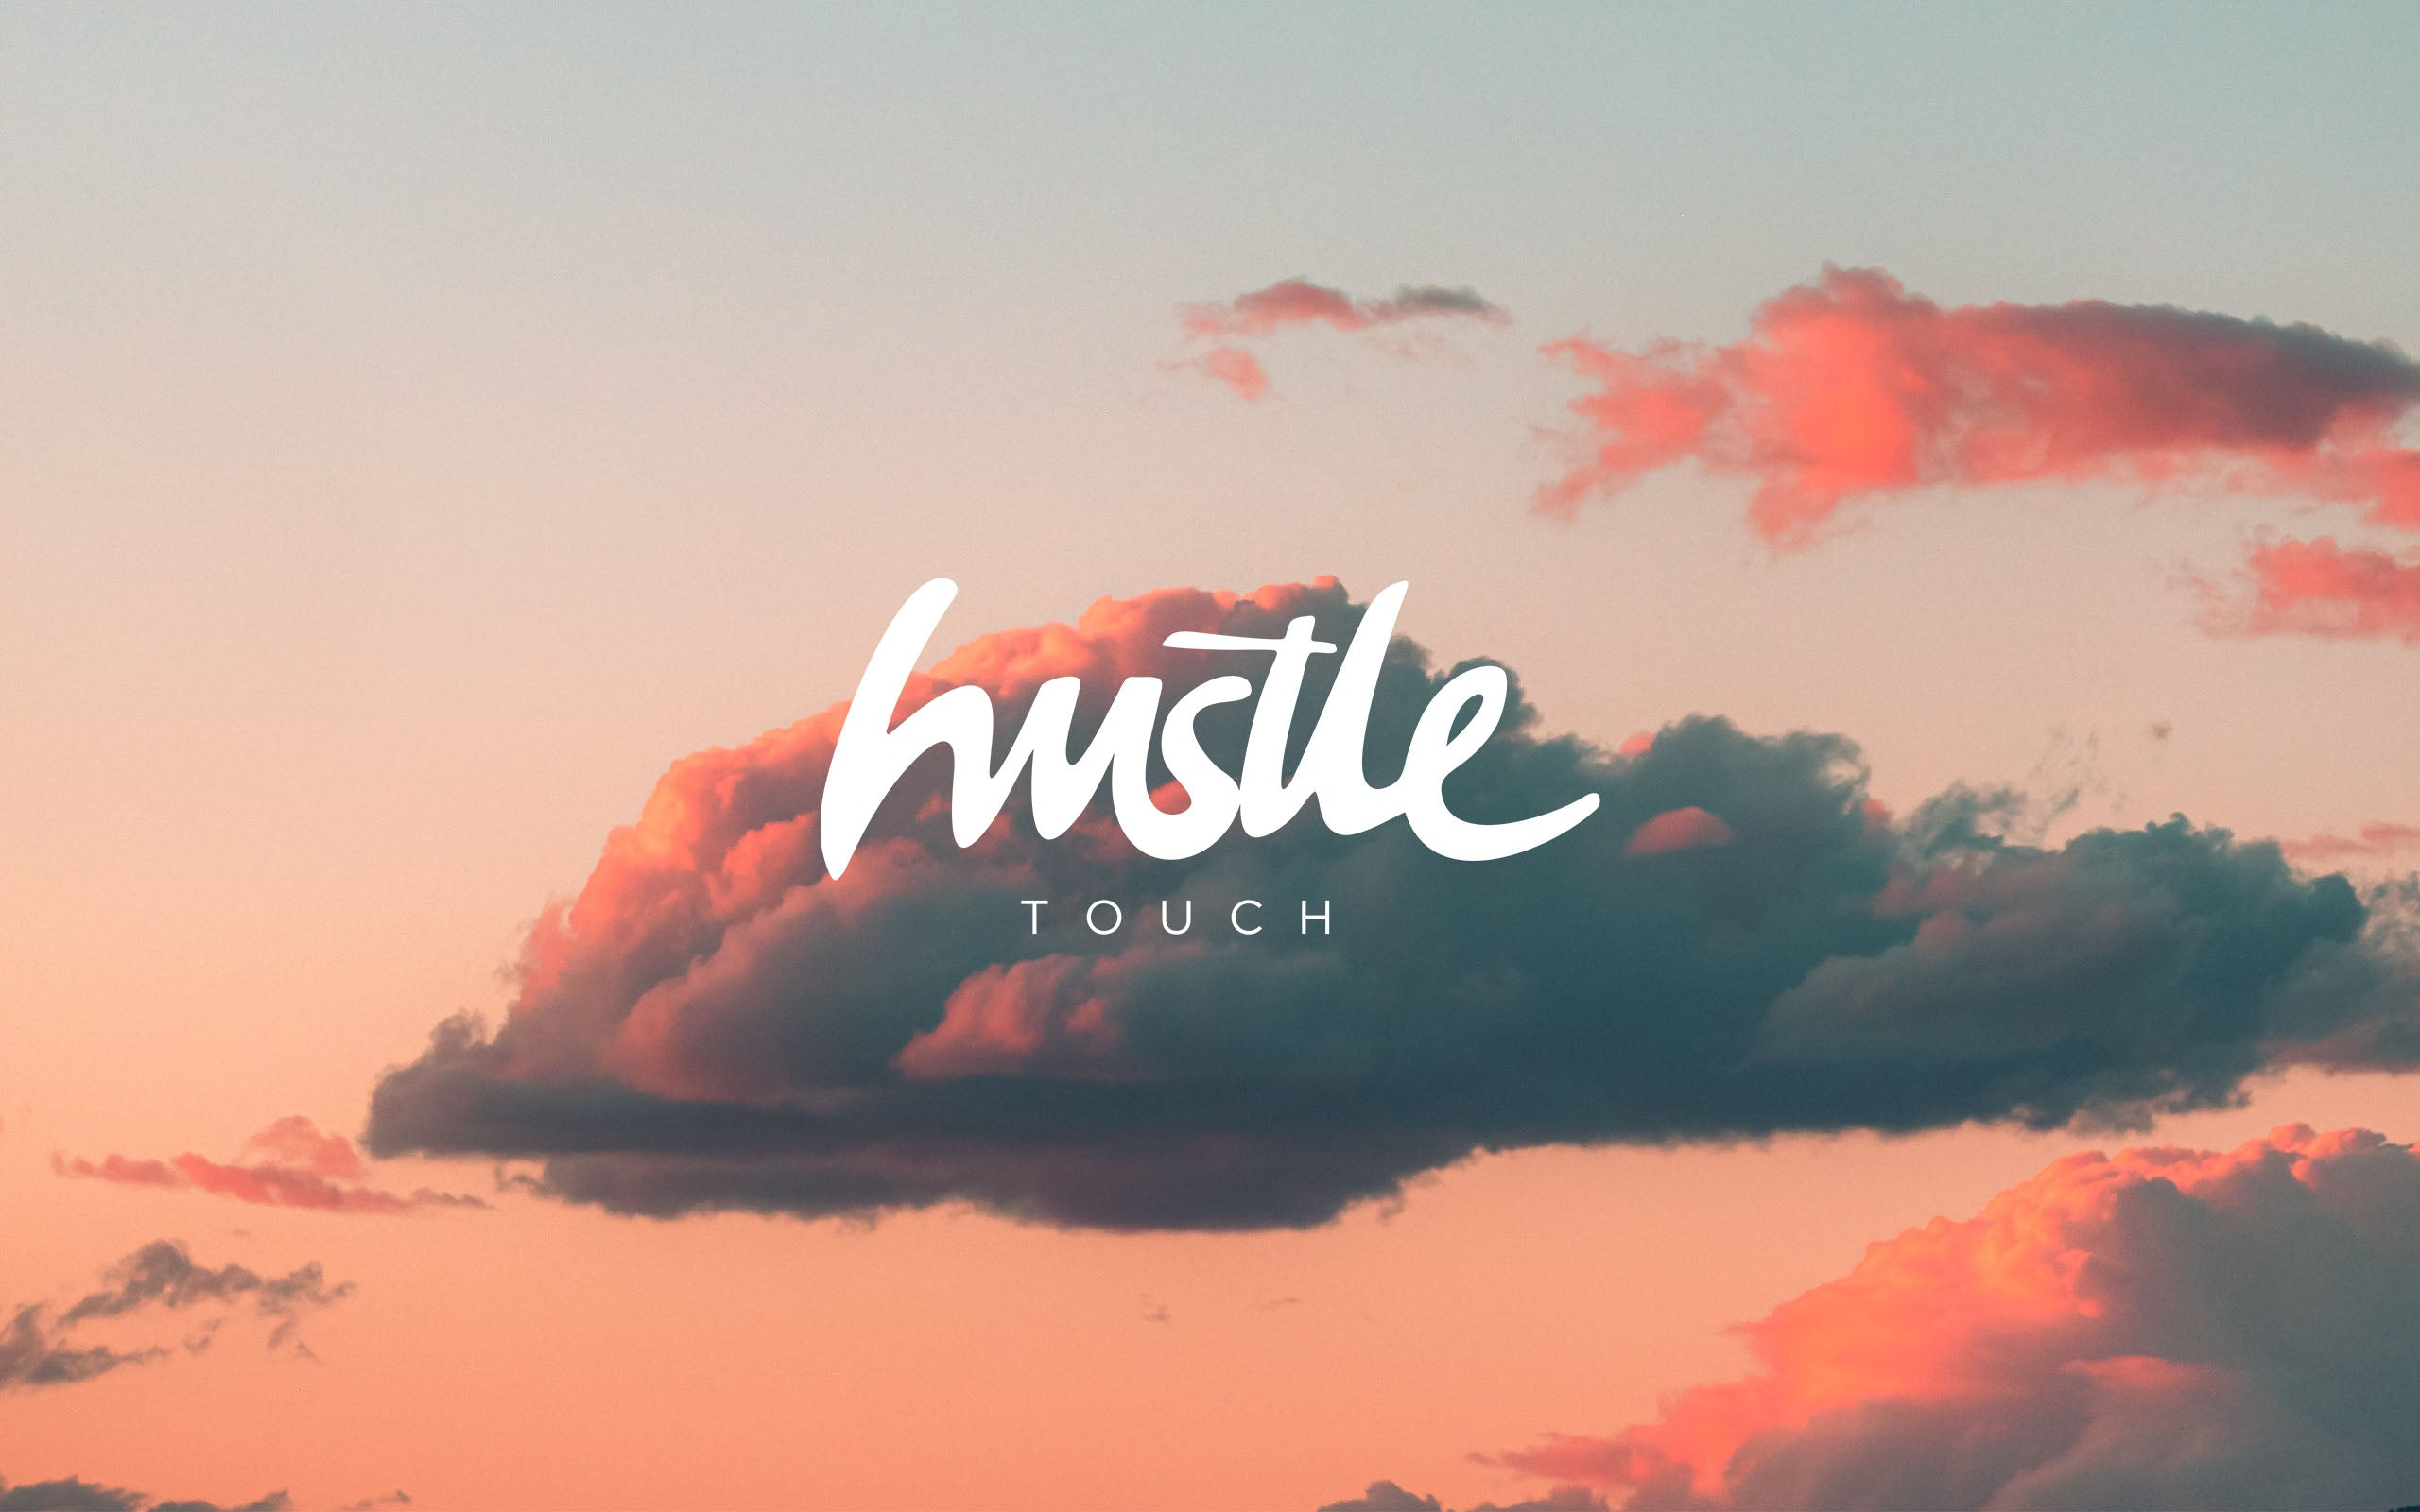 Get our Hustle Touch Wallpaper 059 for free. Give your setup a special hustle vibe with our wallpaper.